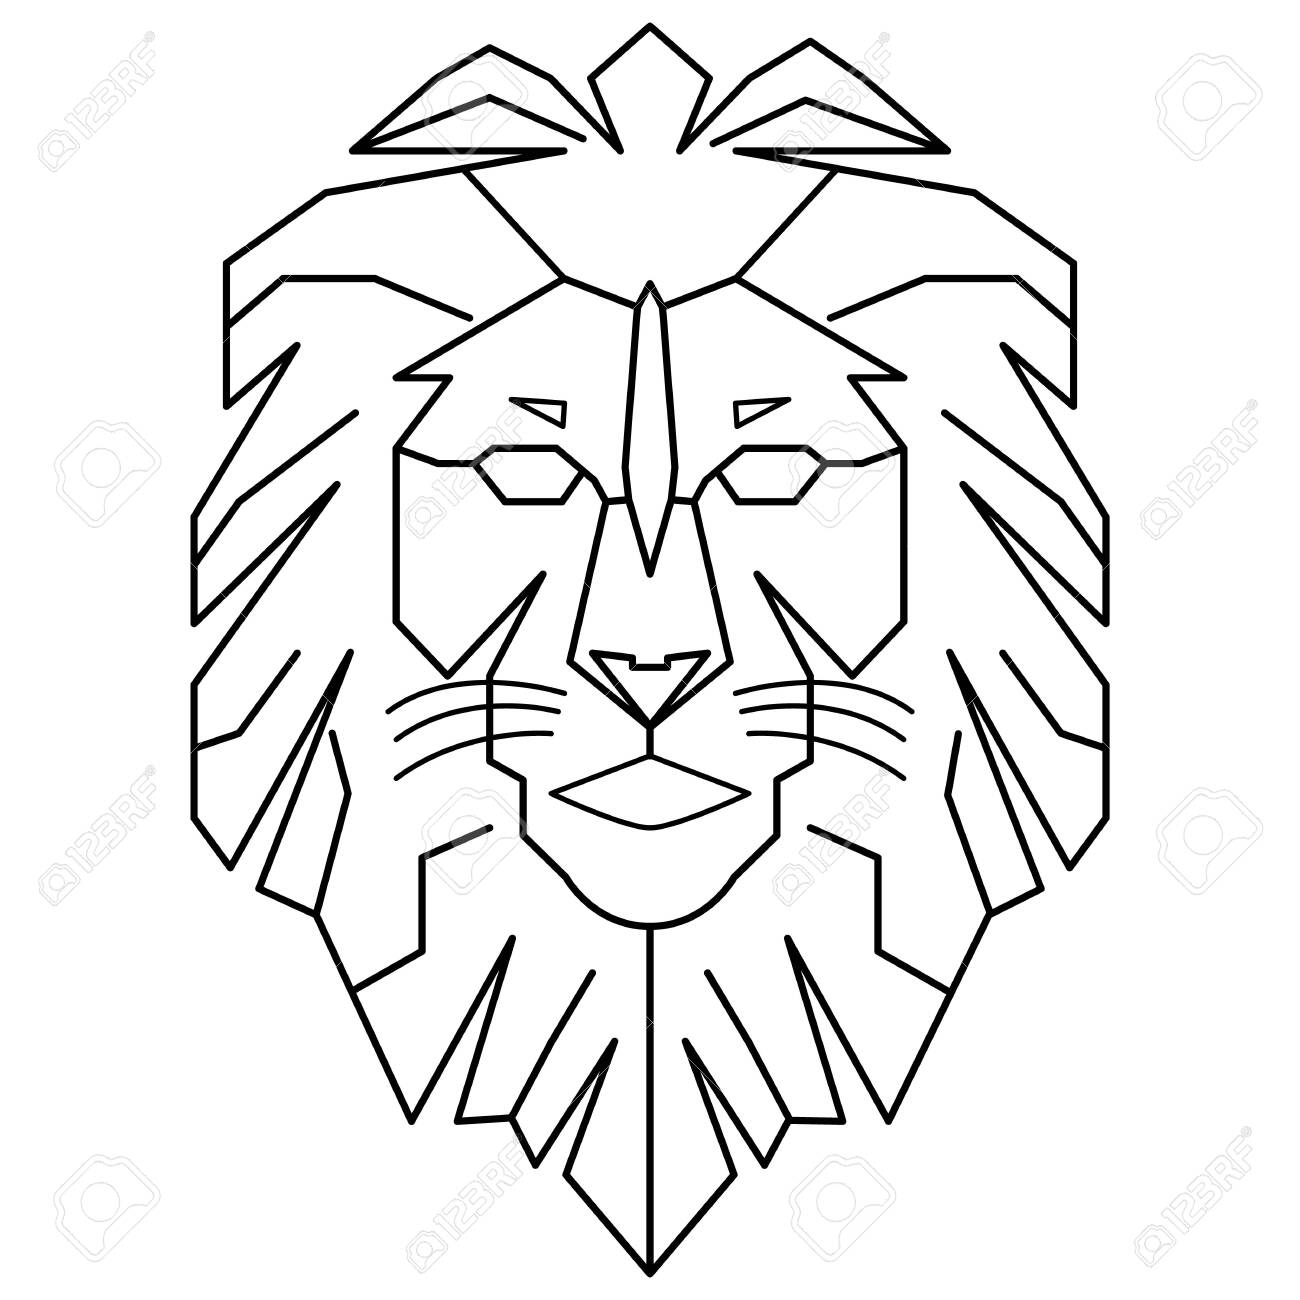 Geometric Lion King Walking Line Art Outline Vector Download Royalty Free Cliparts Vectors And Stock Illustration Image 133338564 There are three lion king movies: geometric lion king walking line art outline vector download